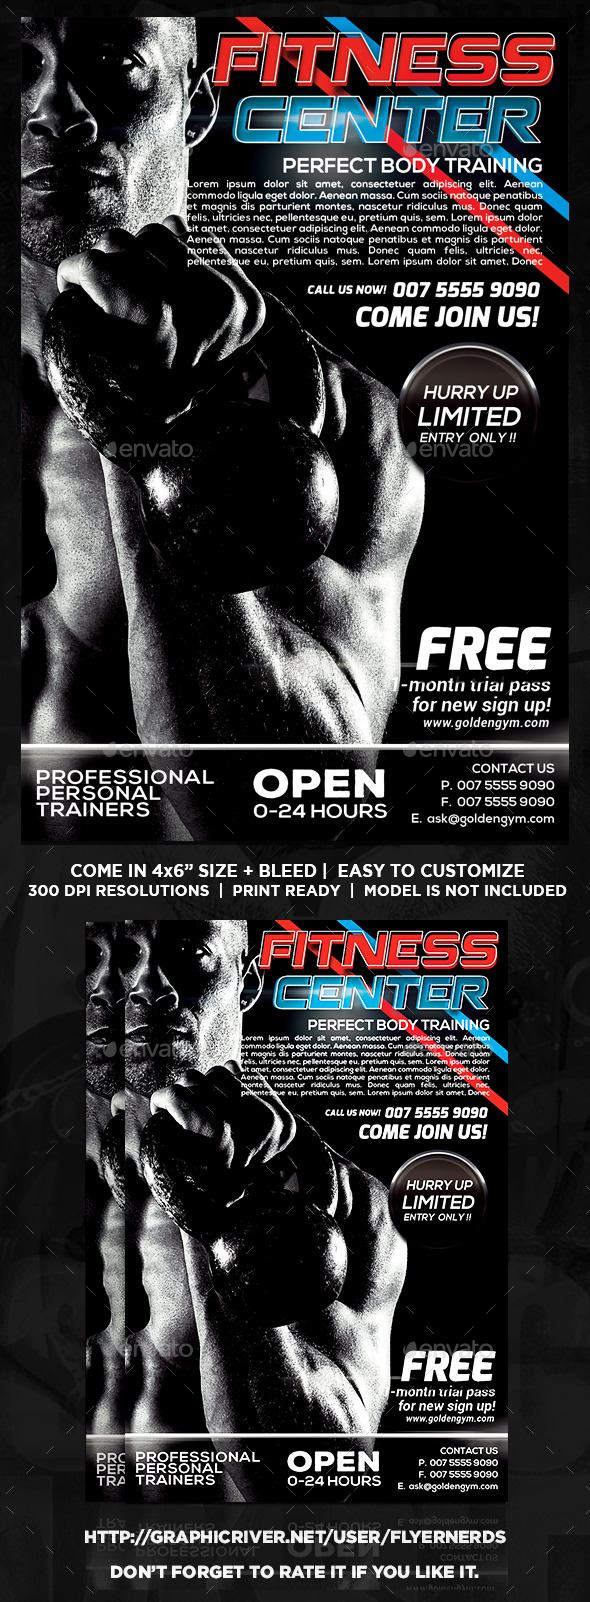 Gym and Fitness Training Center Sports Flyer